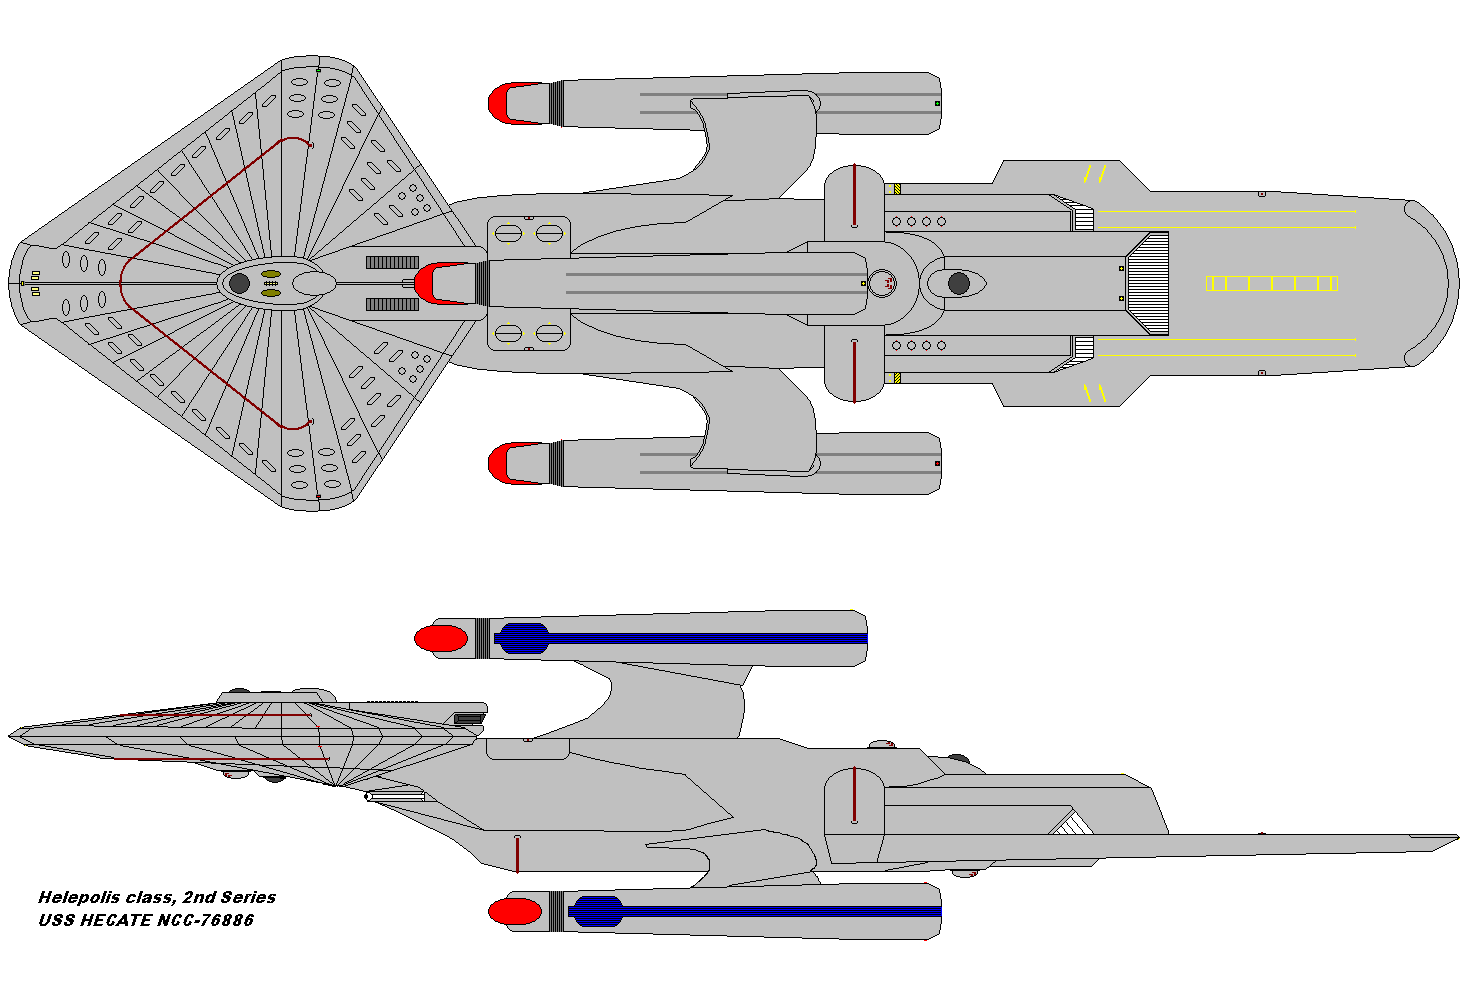 USS HECATE NCC-76886